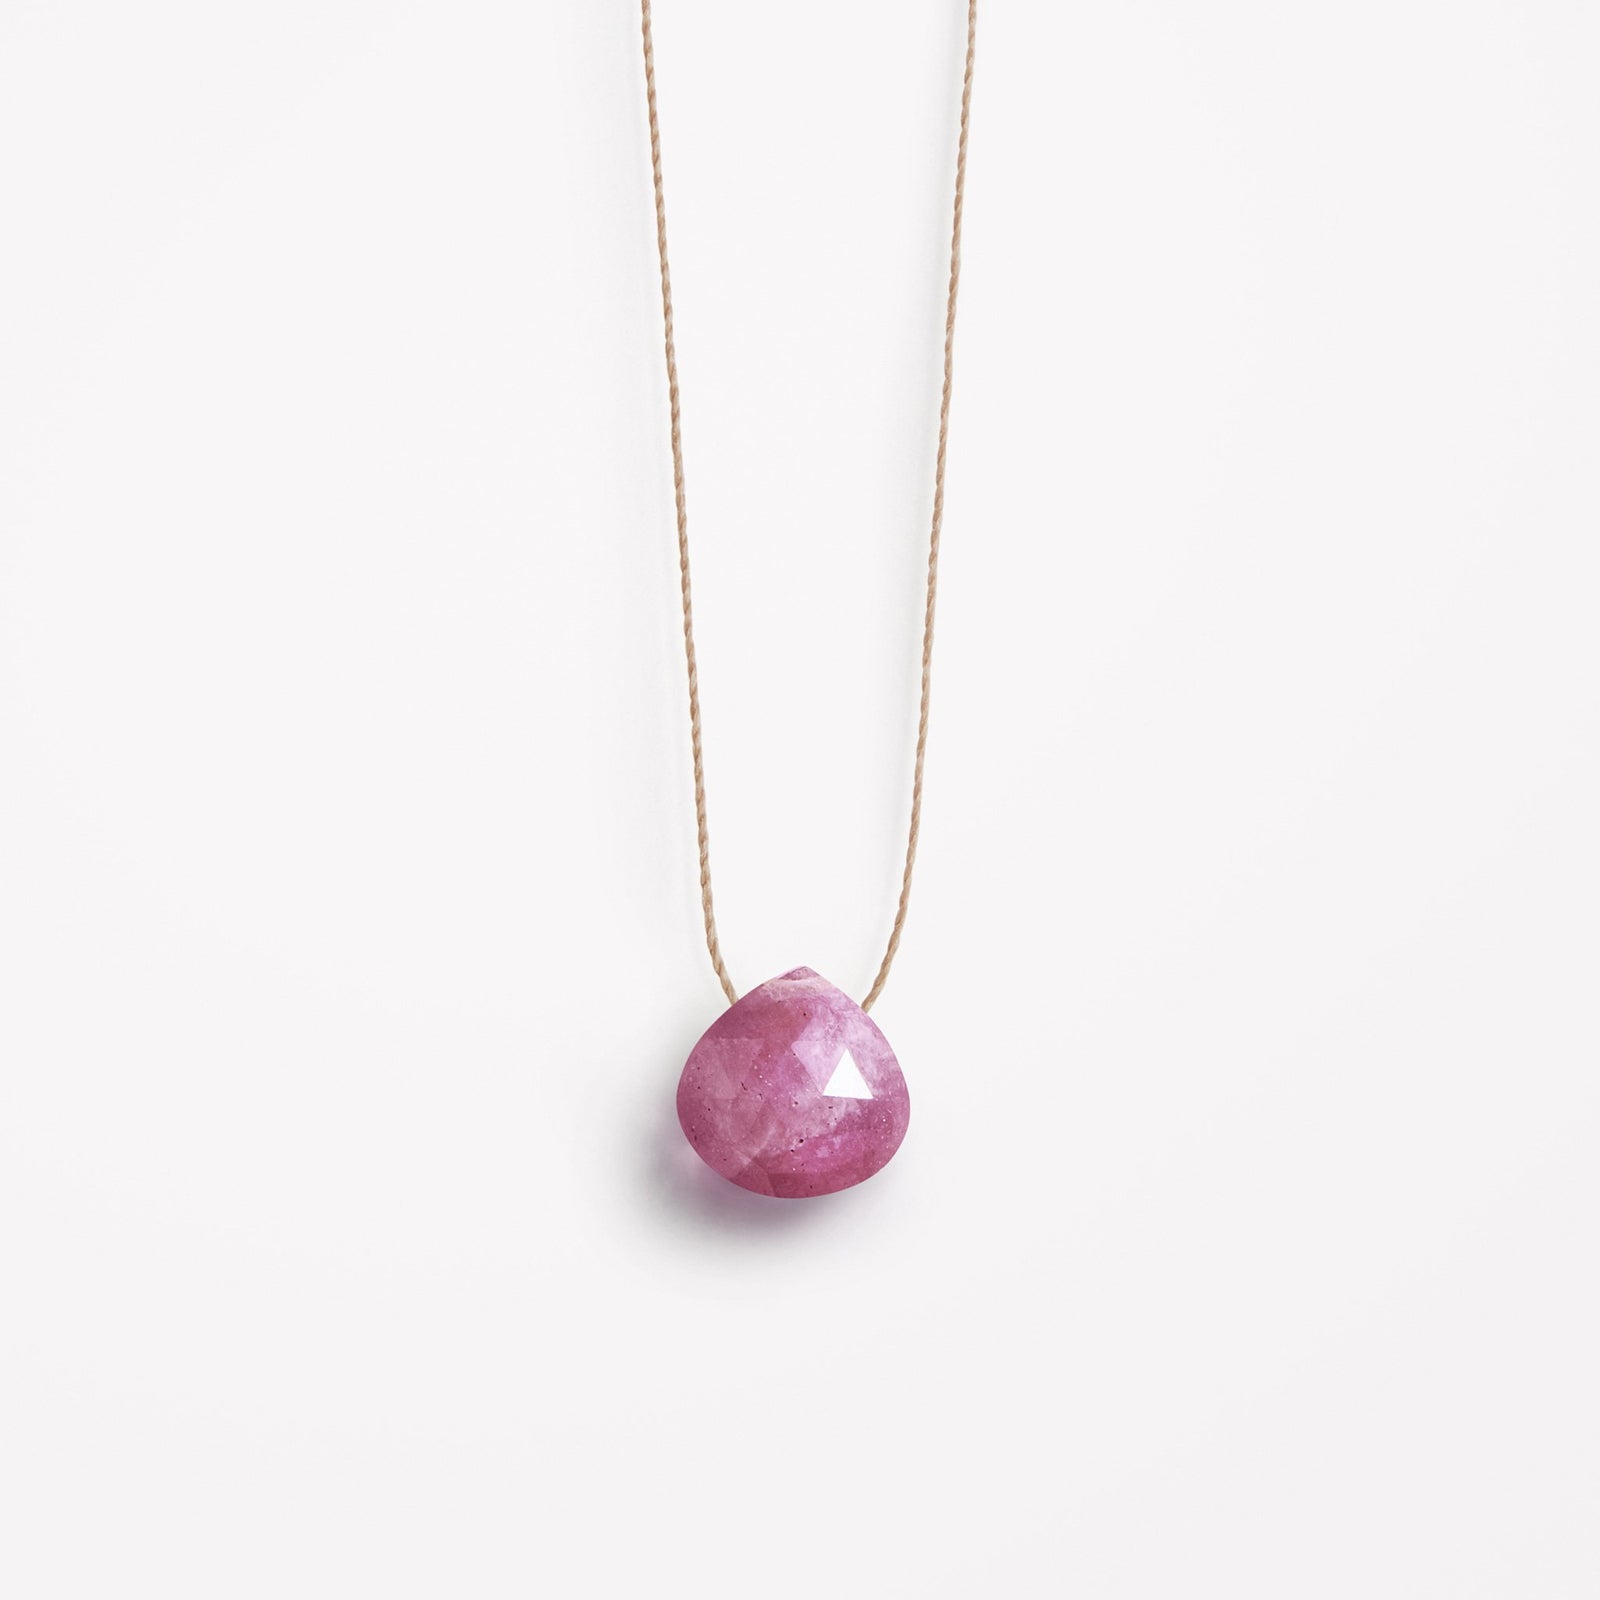 Wanderlust Life Ethically Handmade jewellery made in the UK. Minimalist gold and fine cord jewellery. september birthstone, pink sapphire fine cord necklace